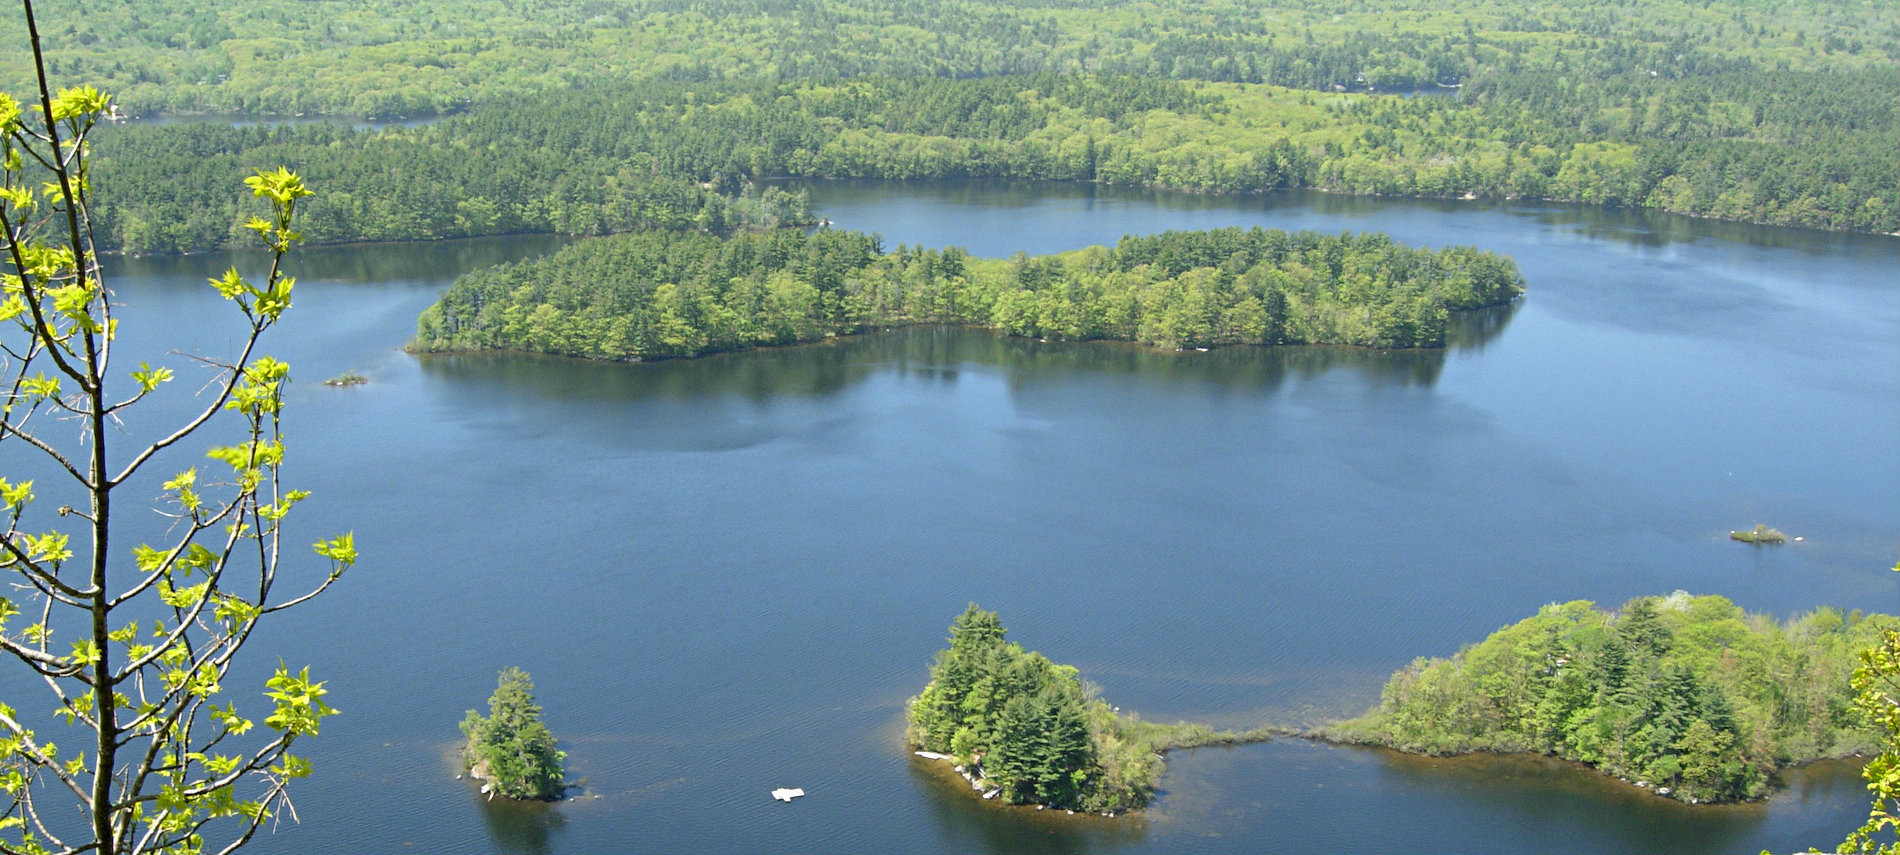 Overhead view of the water with several forested areas on a hazy summer day.